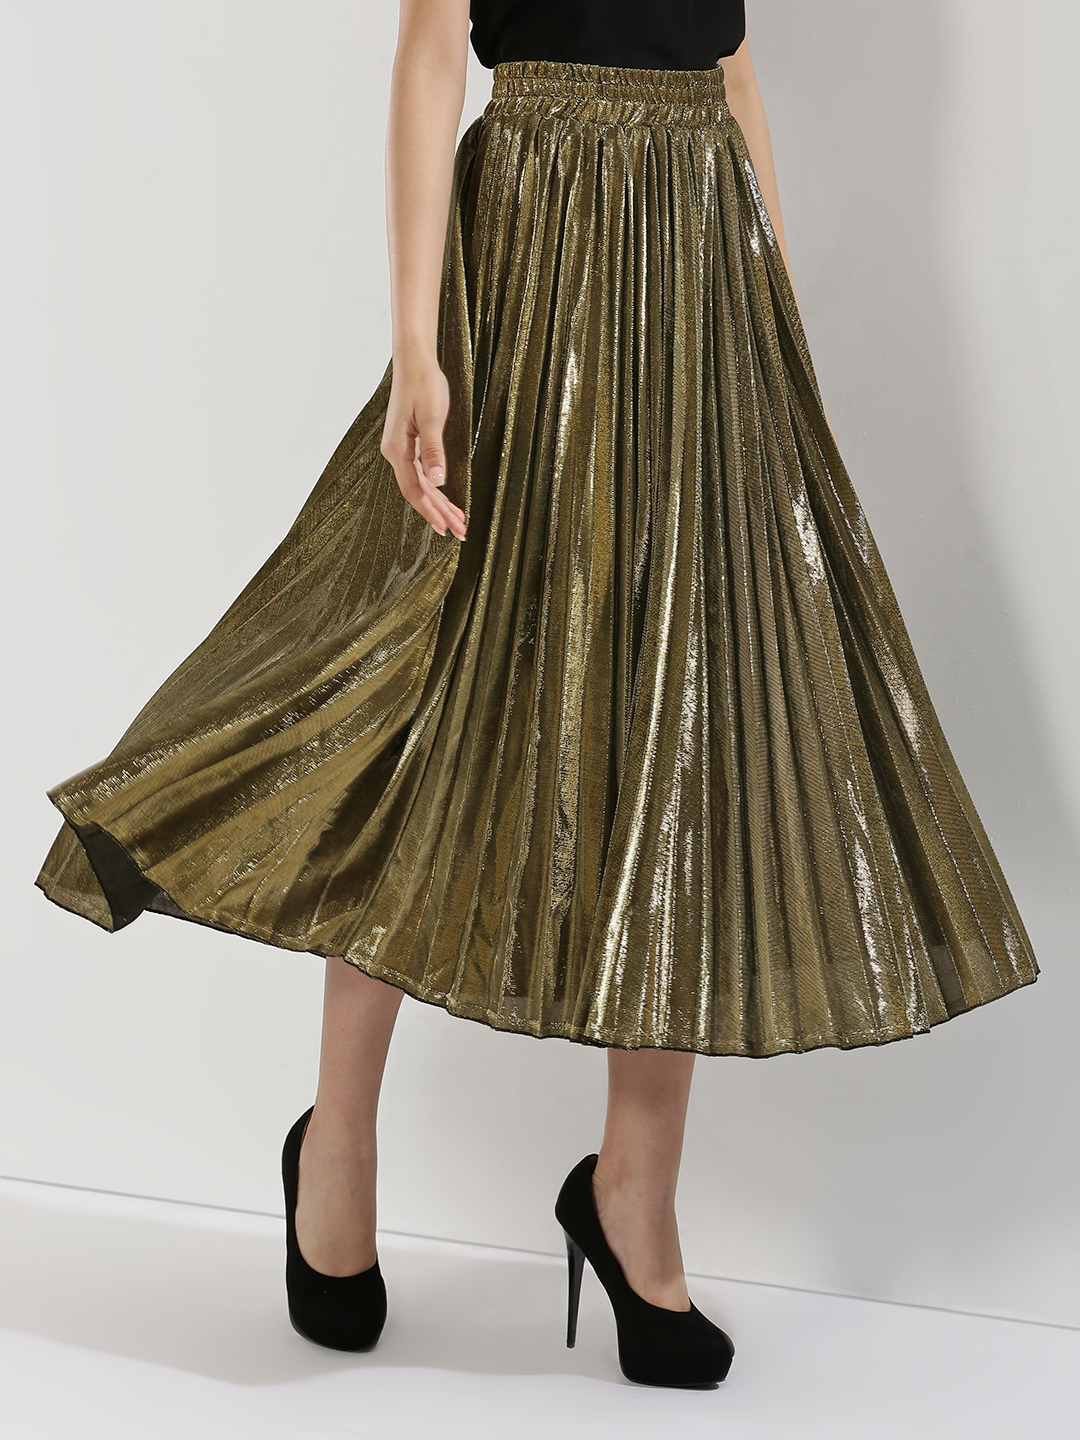 Origami Lily Copper Metallic Pleated Skirt 1